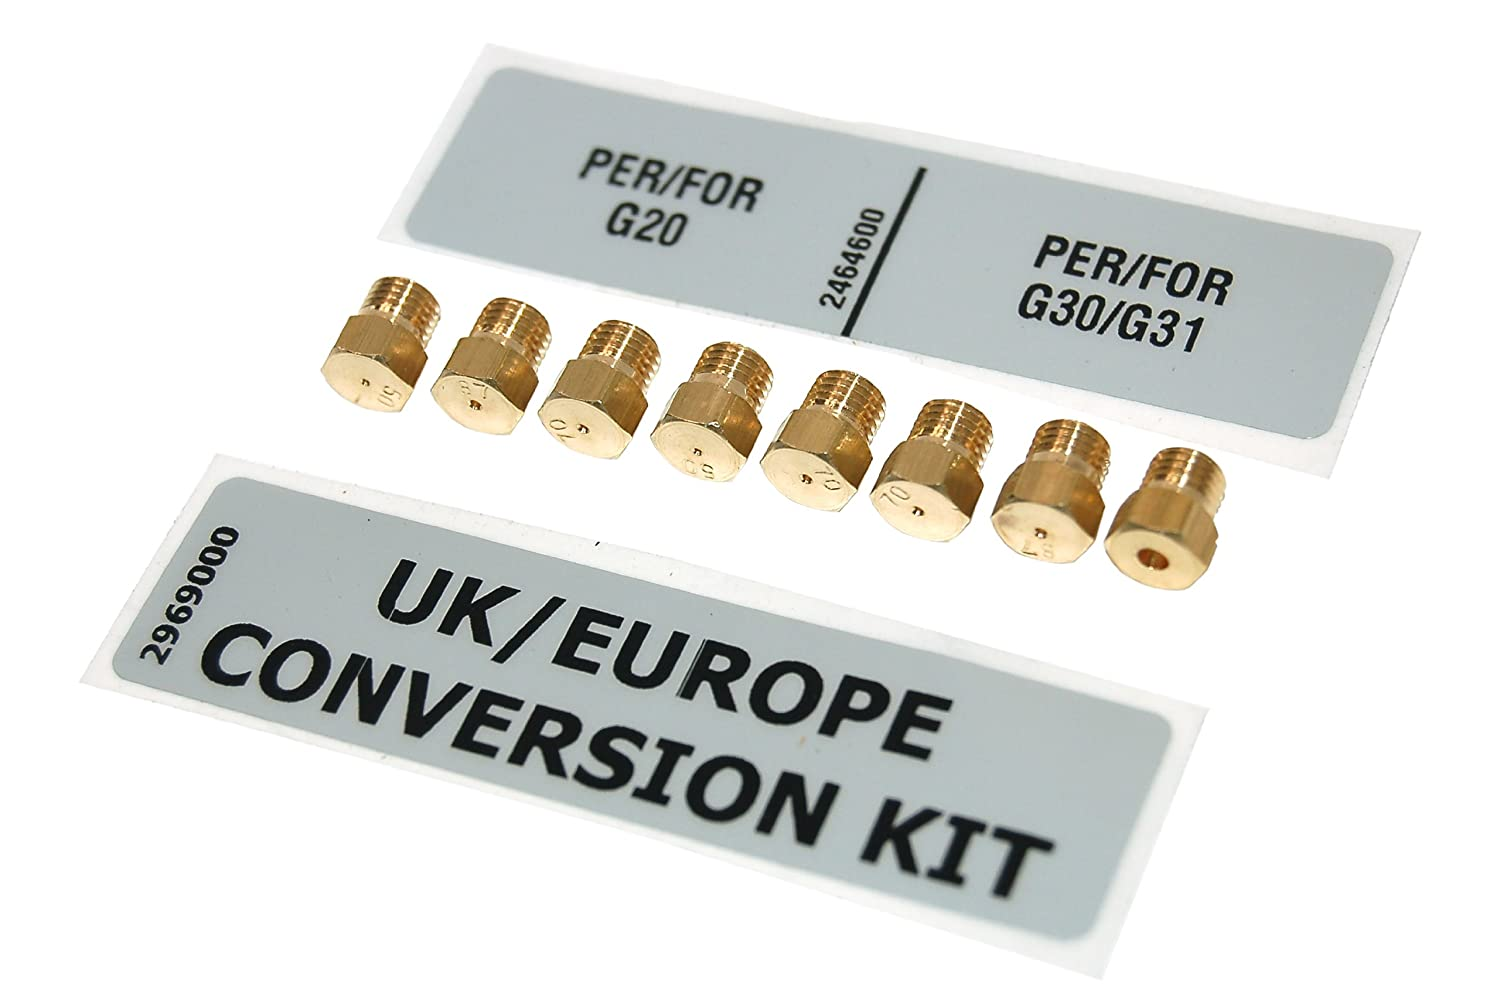 Belling Oven Conversion Kit Lpg - Genuine part number 012860200